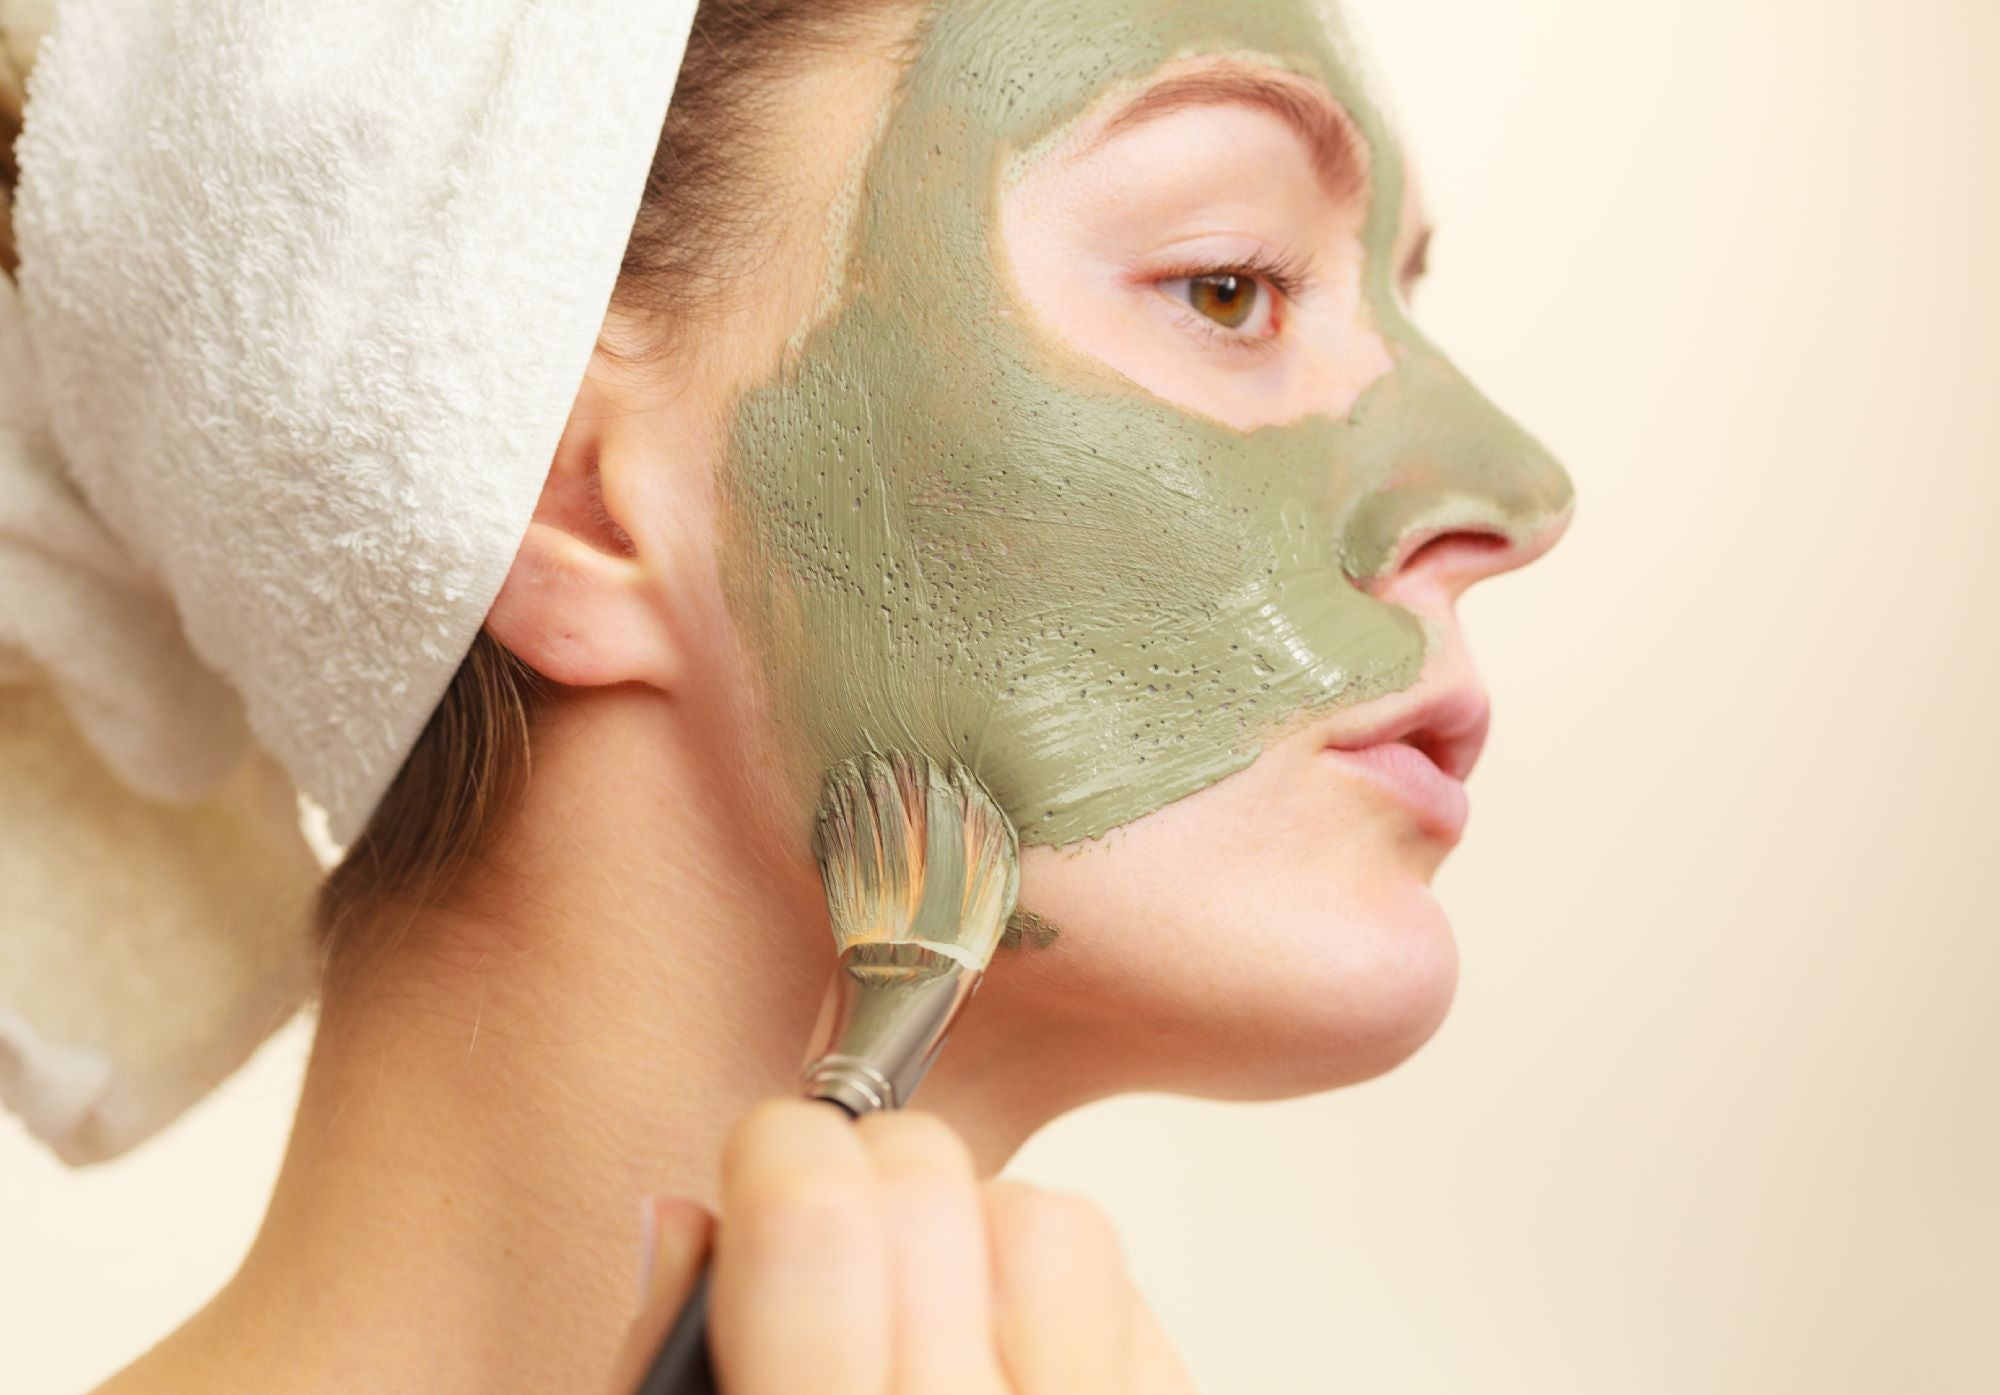 BENTONITE CLAY MASK BENEFITS WHEN USED IN SKIN CARE